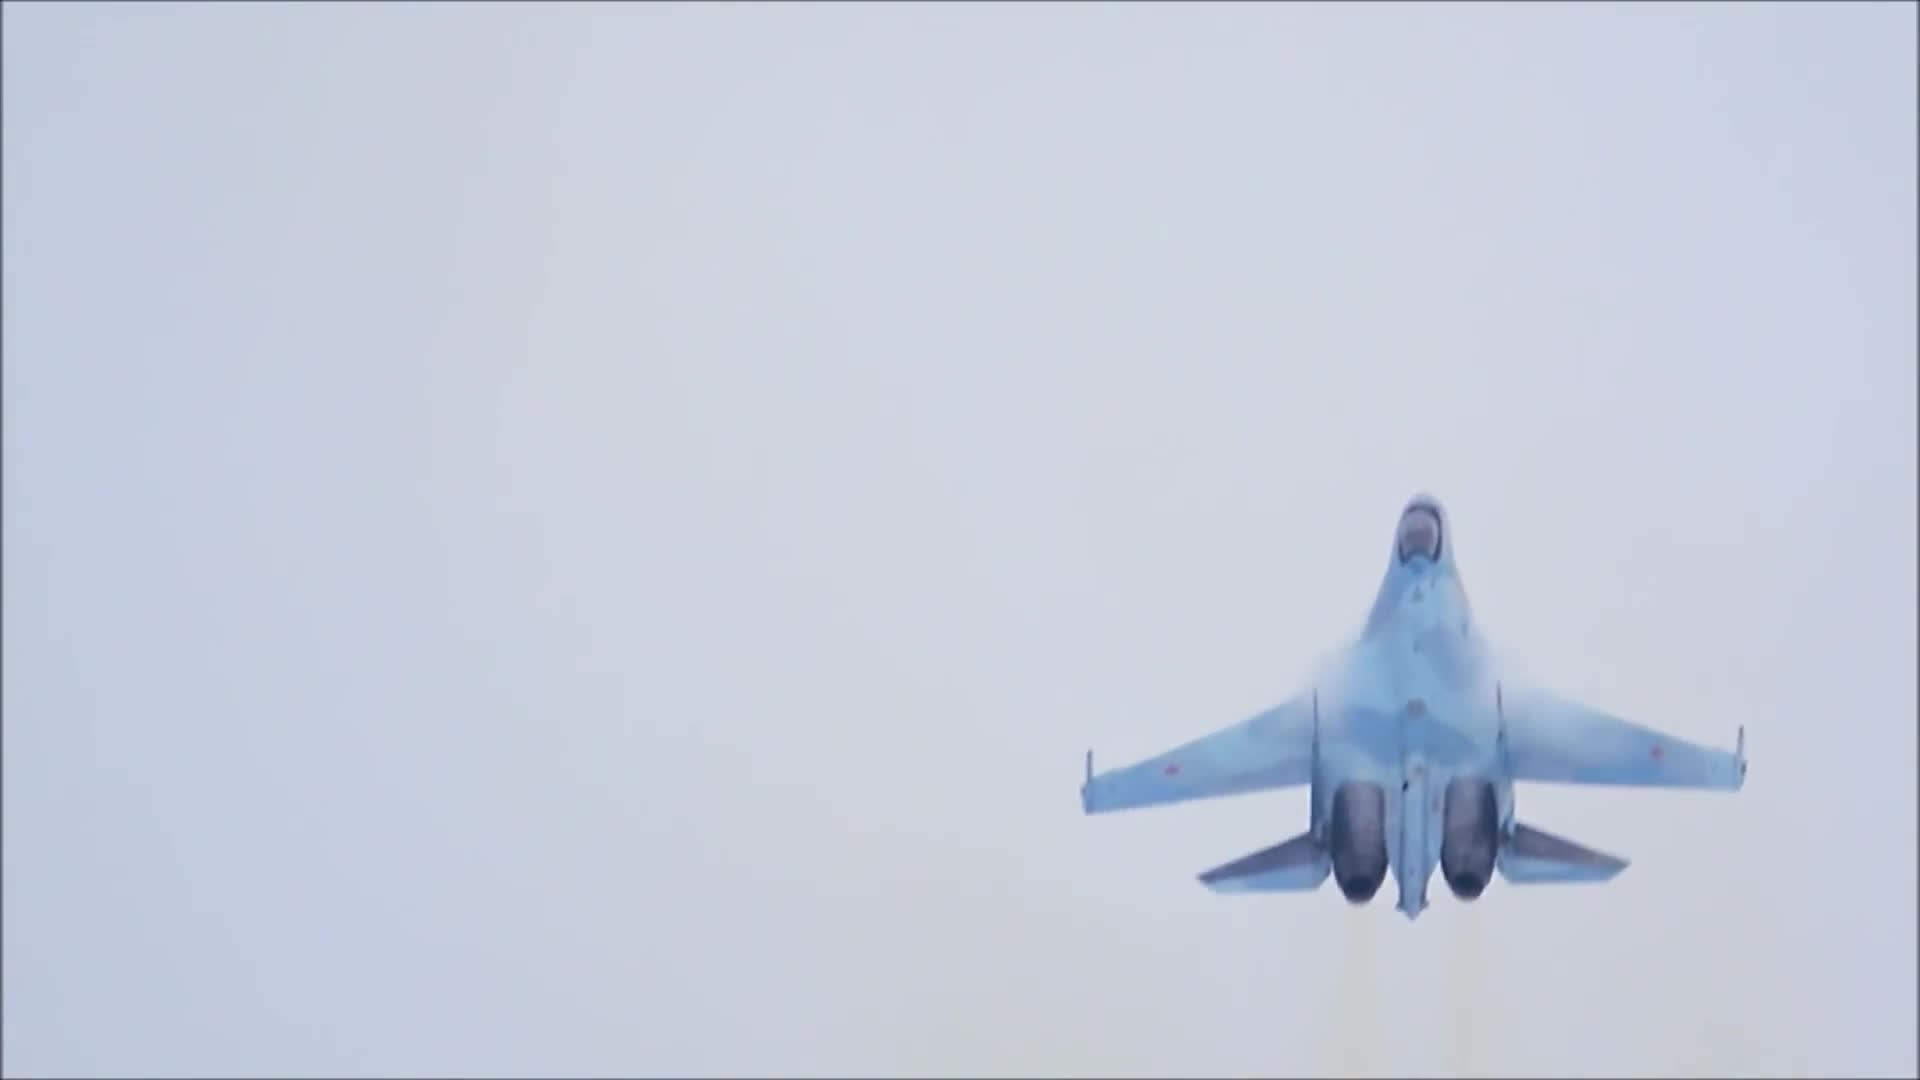 3D, Airguardian, Jet, RC4ever, SU-35, SUKHOI, aerobatics, extreme, fighter, radiocontrol, MAKS 2017 - SU-35S defies the laws of physics! - HD 50fps GIFs